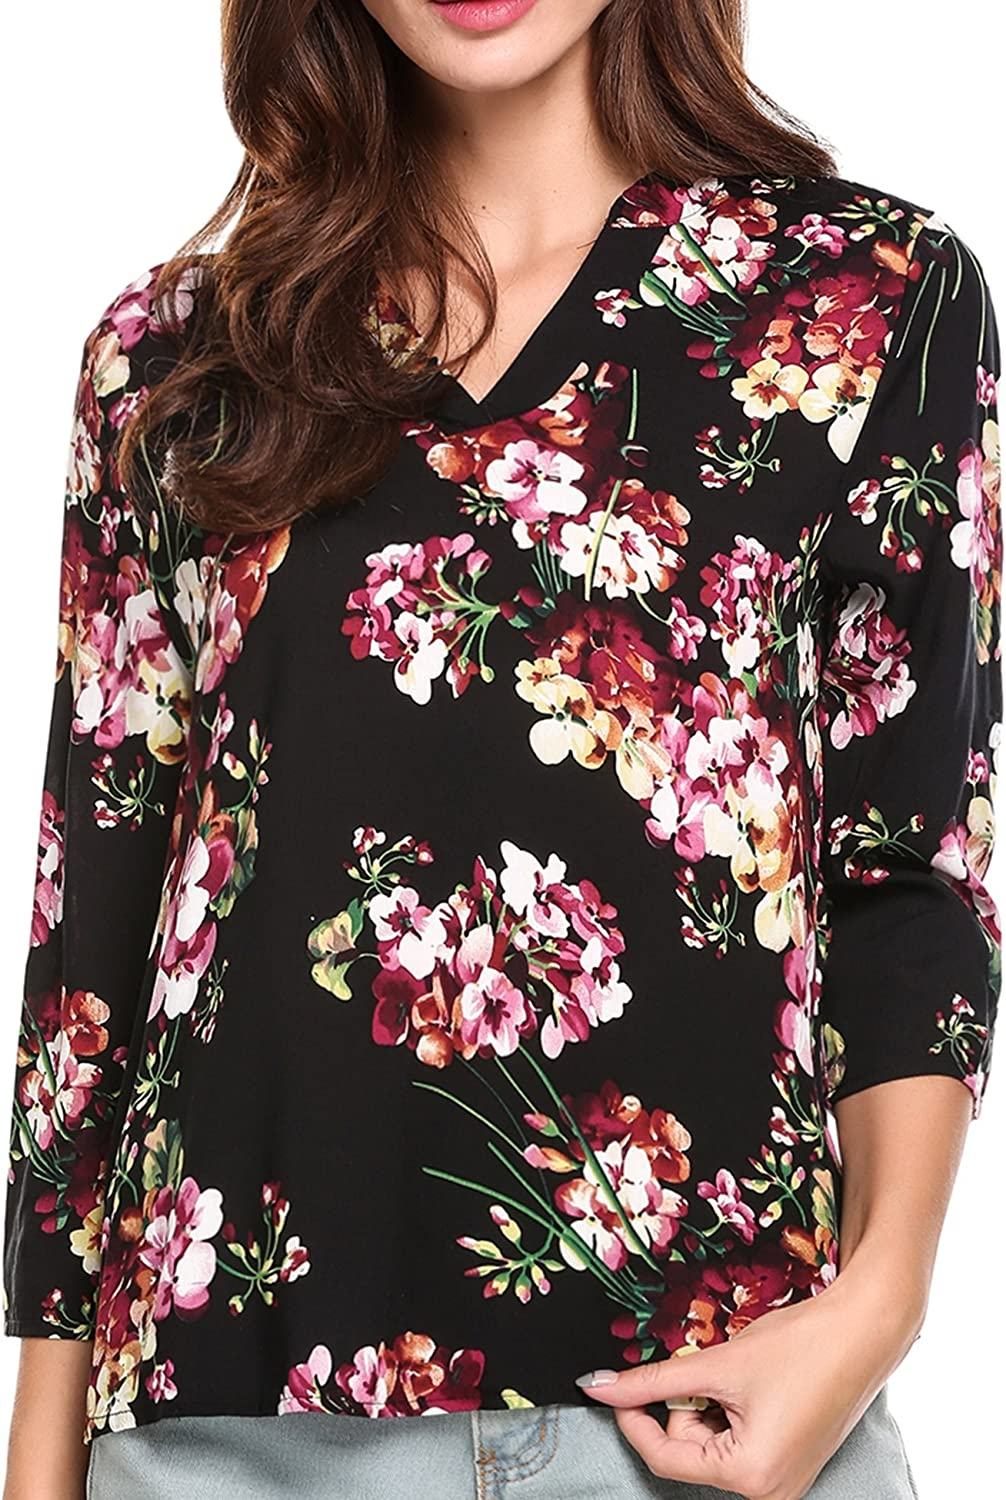 Quirky printed high-low tunic